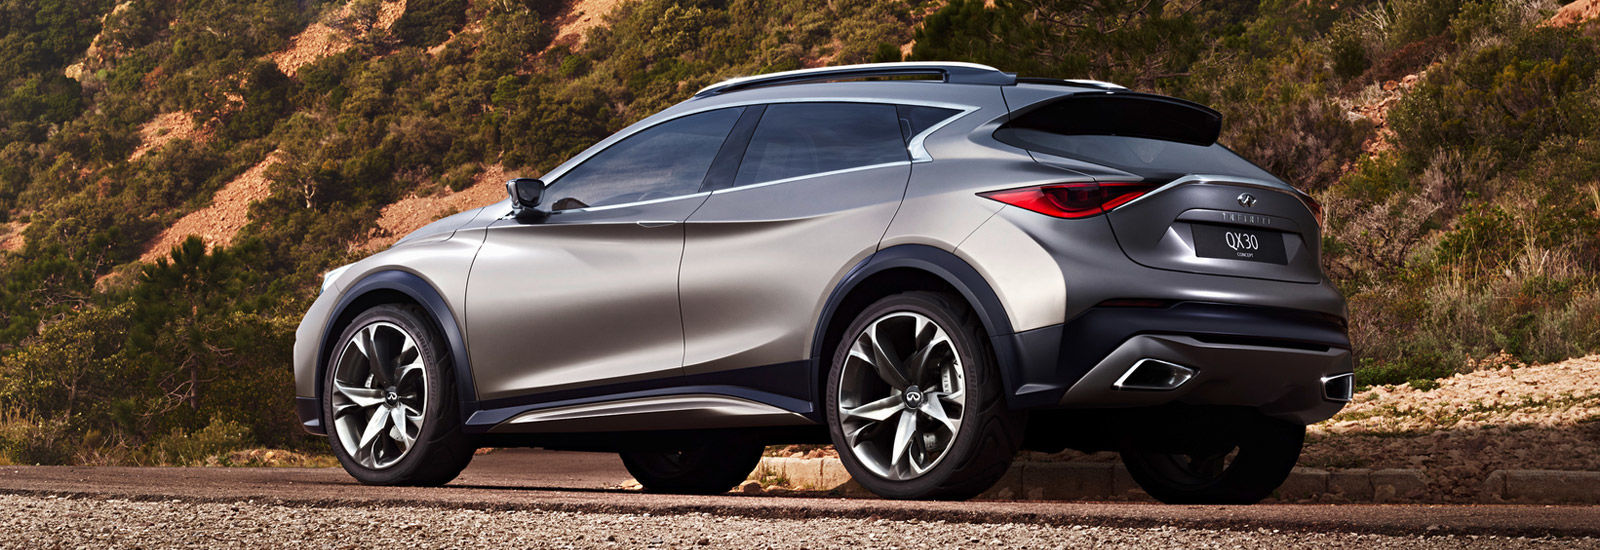 new car release dates ukNew car launches 2016 uk in High quality and best for desktop